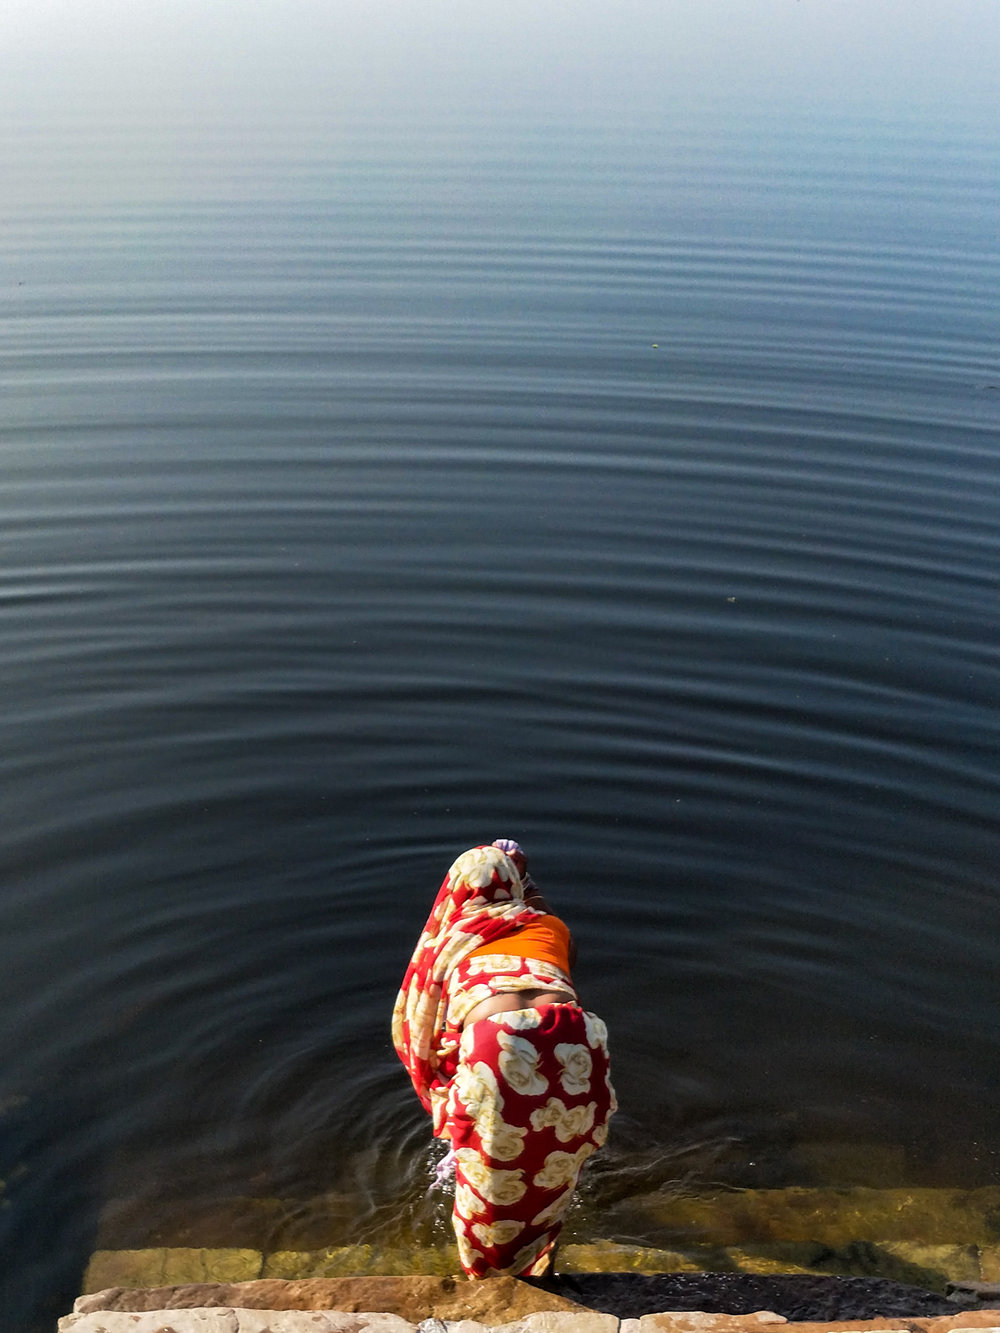 Walking around the Brahma temple, I met a woman sitting beside a lake at sunset with tears rolling down her face.